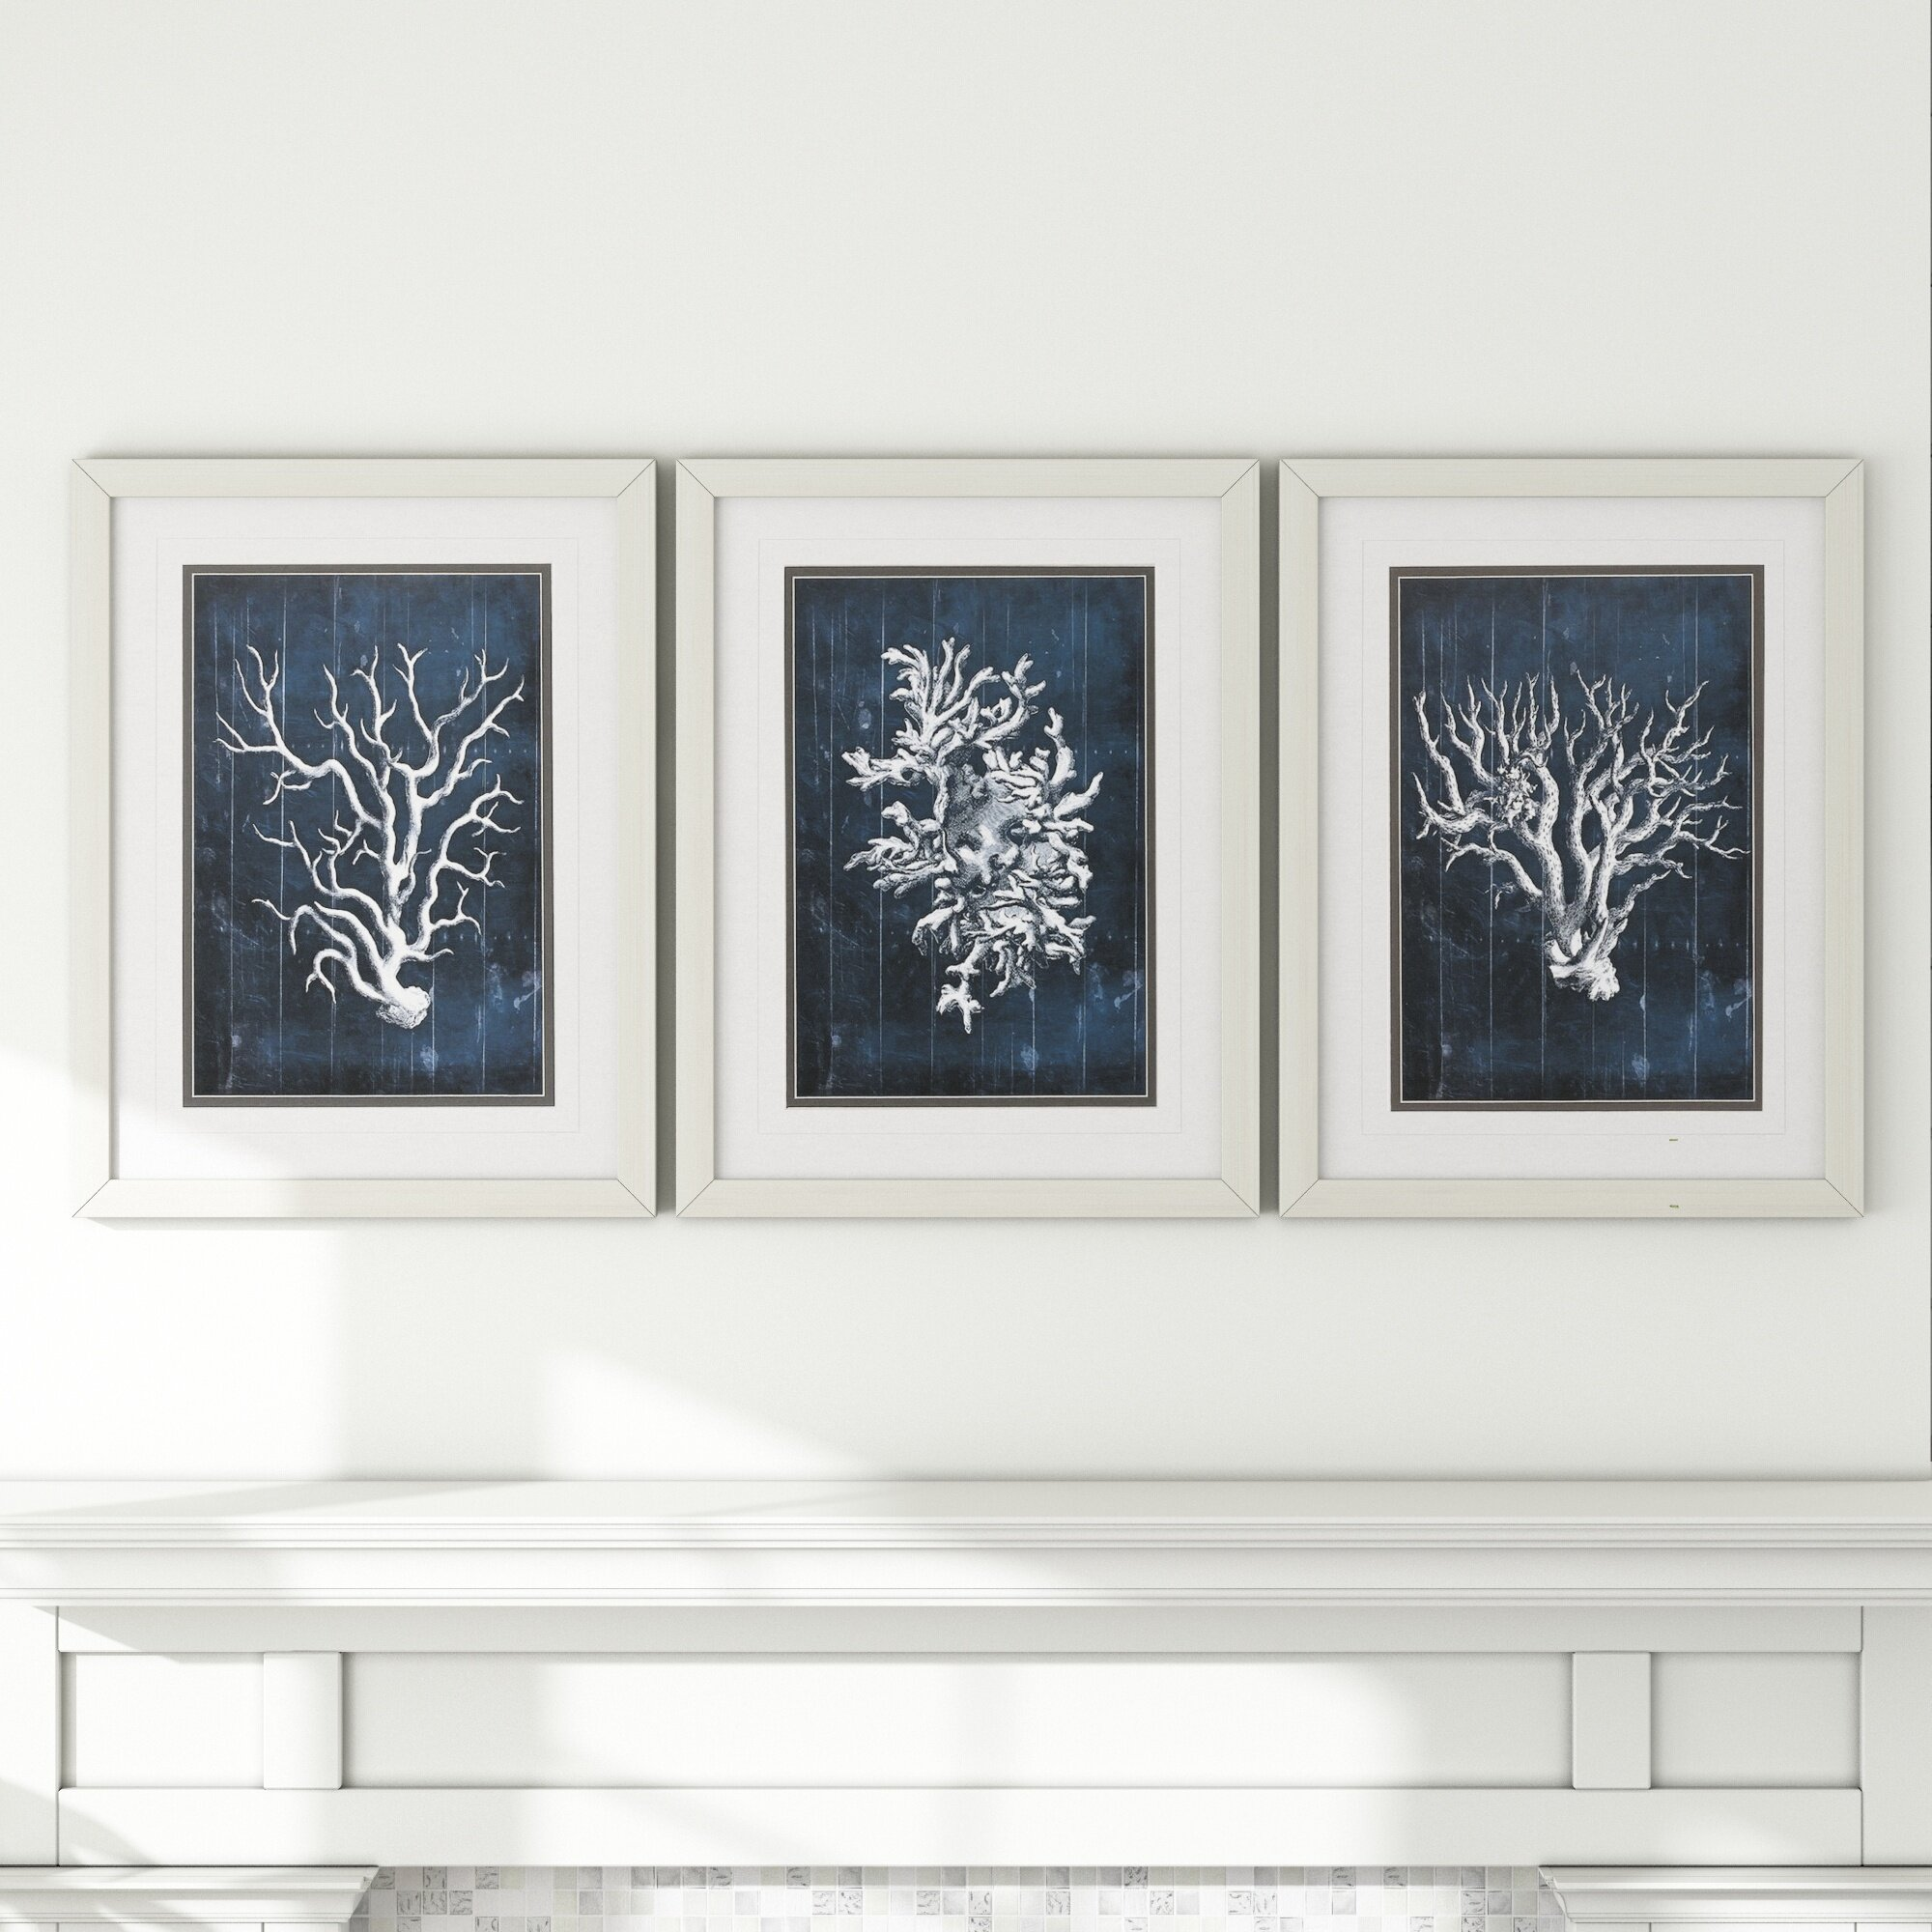 Wood Coral 3 Piece Framed Graphic Art Set In Blue